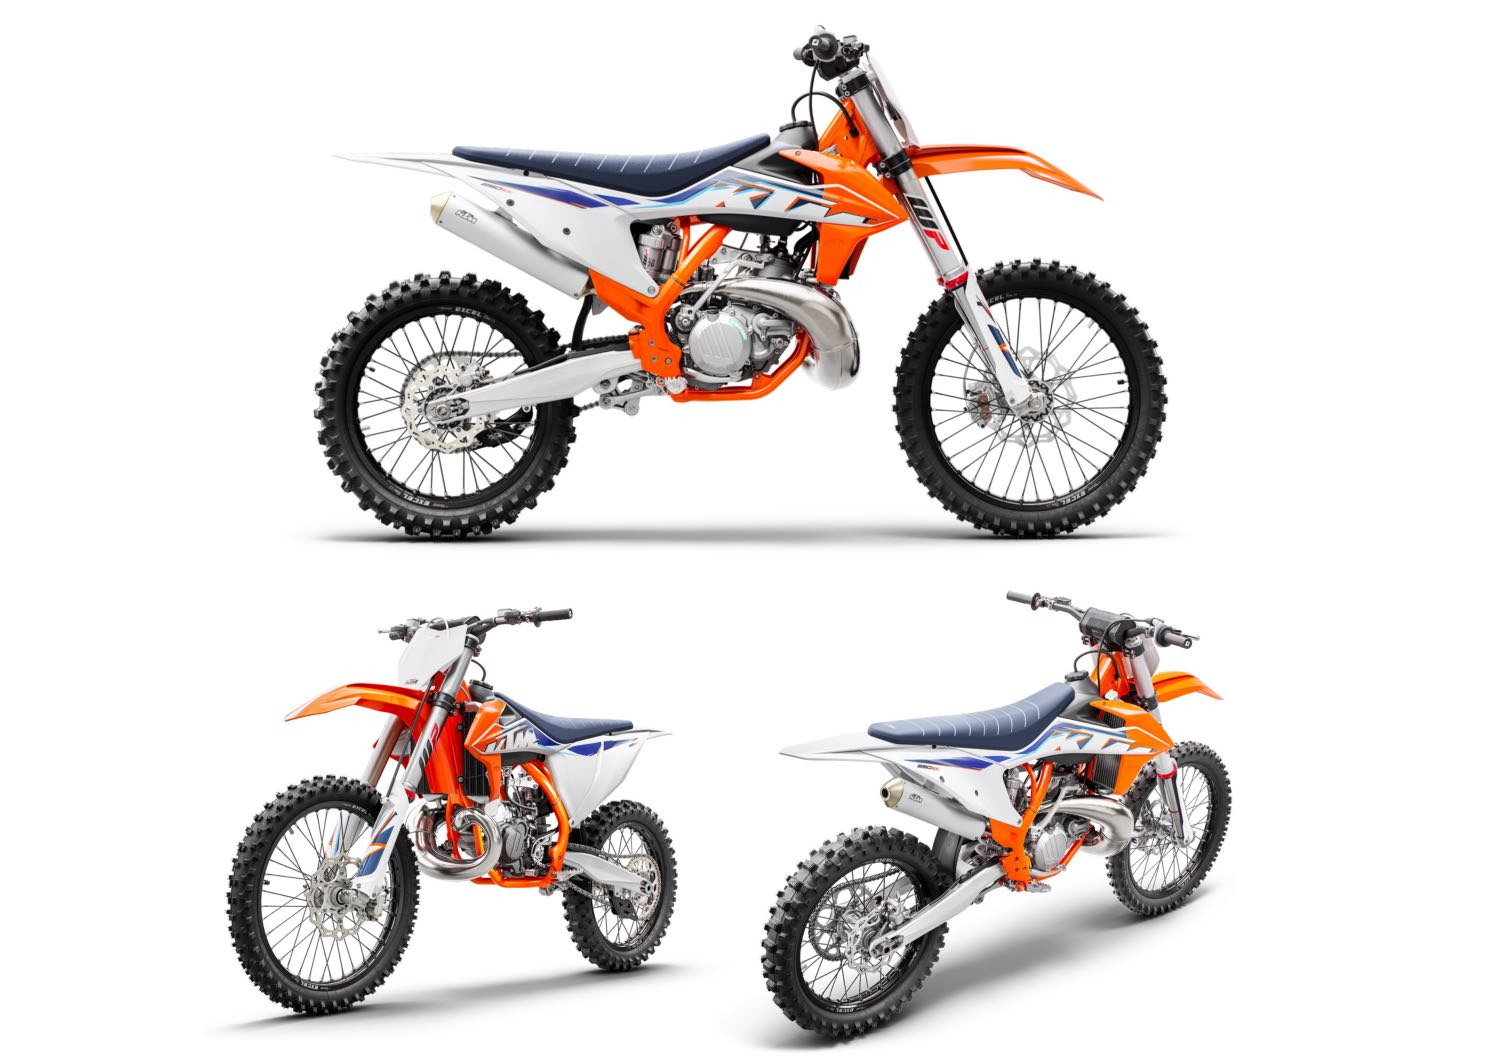 Introducing the 2022 KTM 250 SX